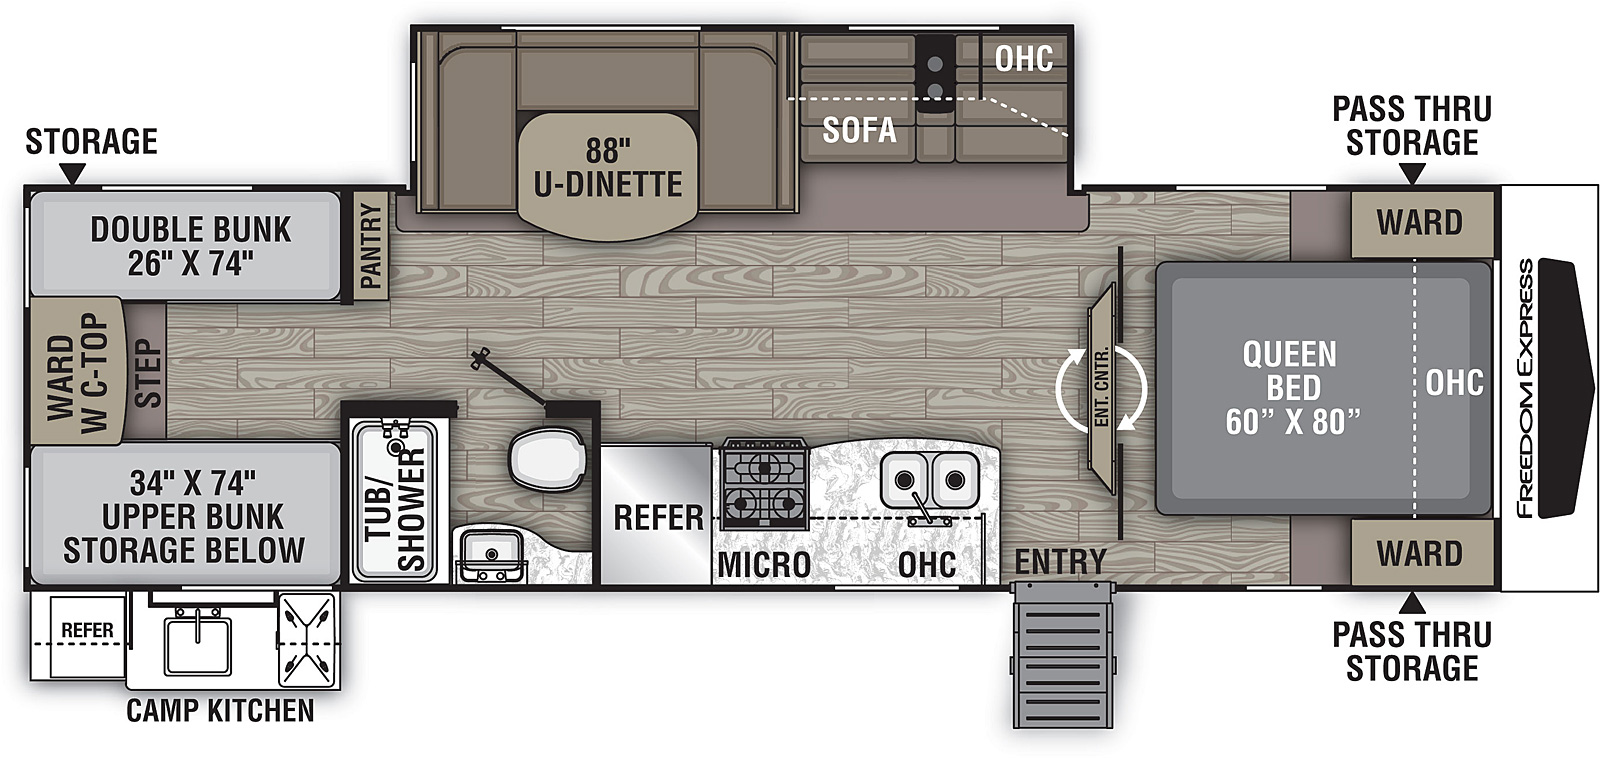 Floorplan for Freedom Express Ultra Lite Travel Trailers model 292 BHDS